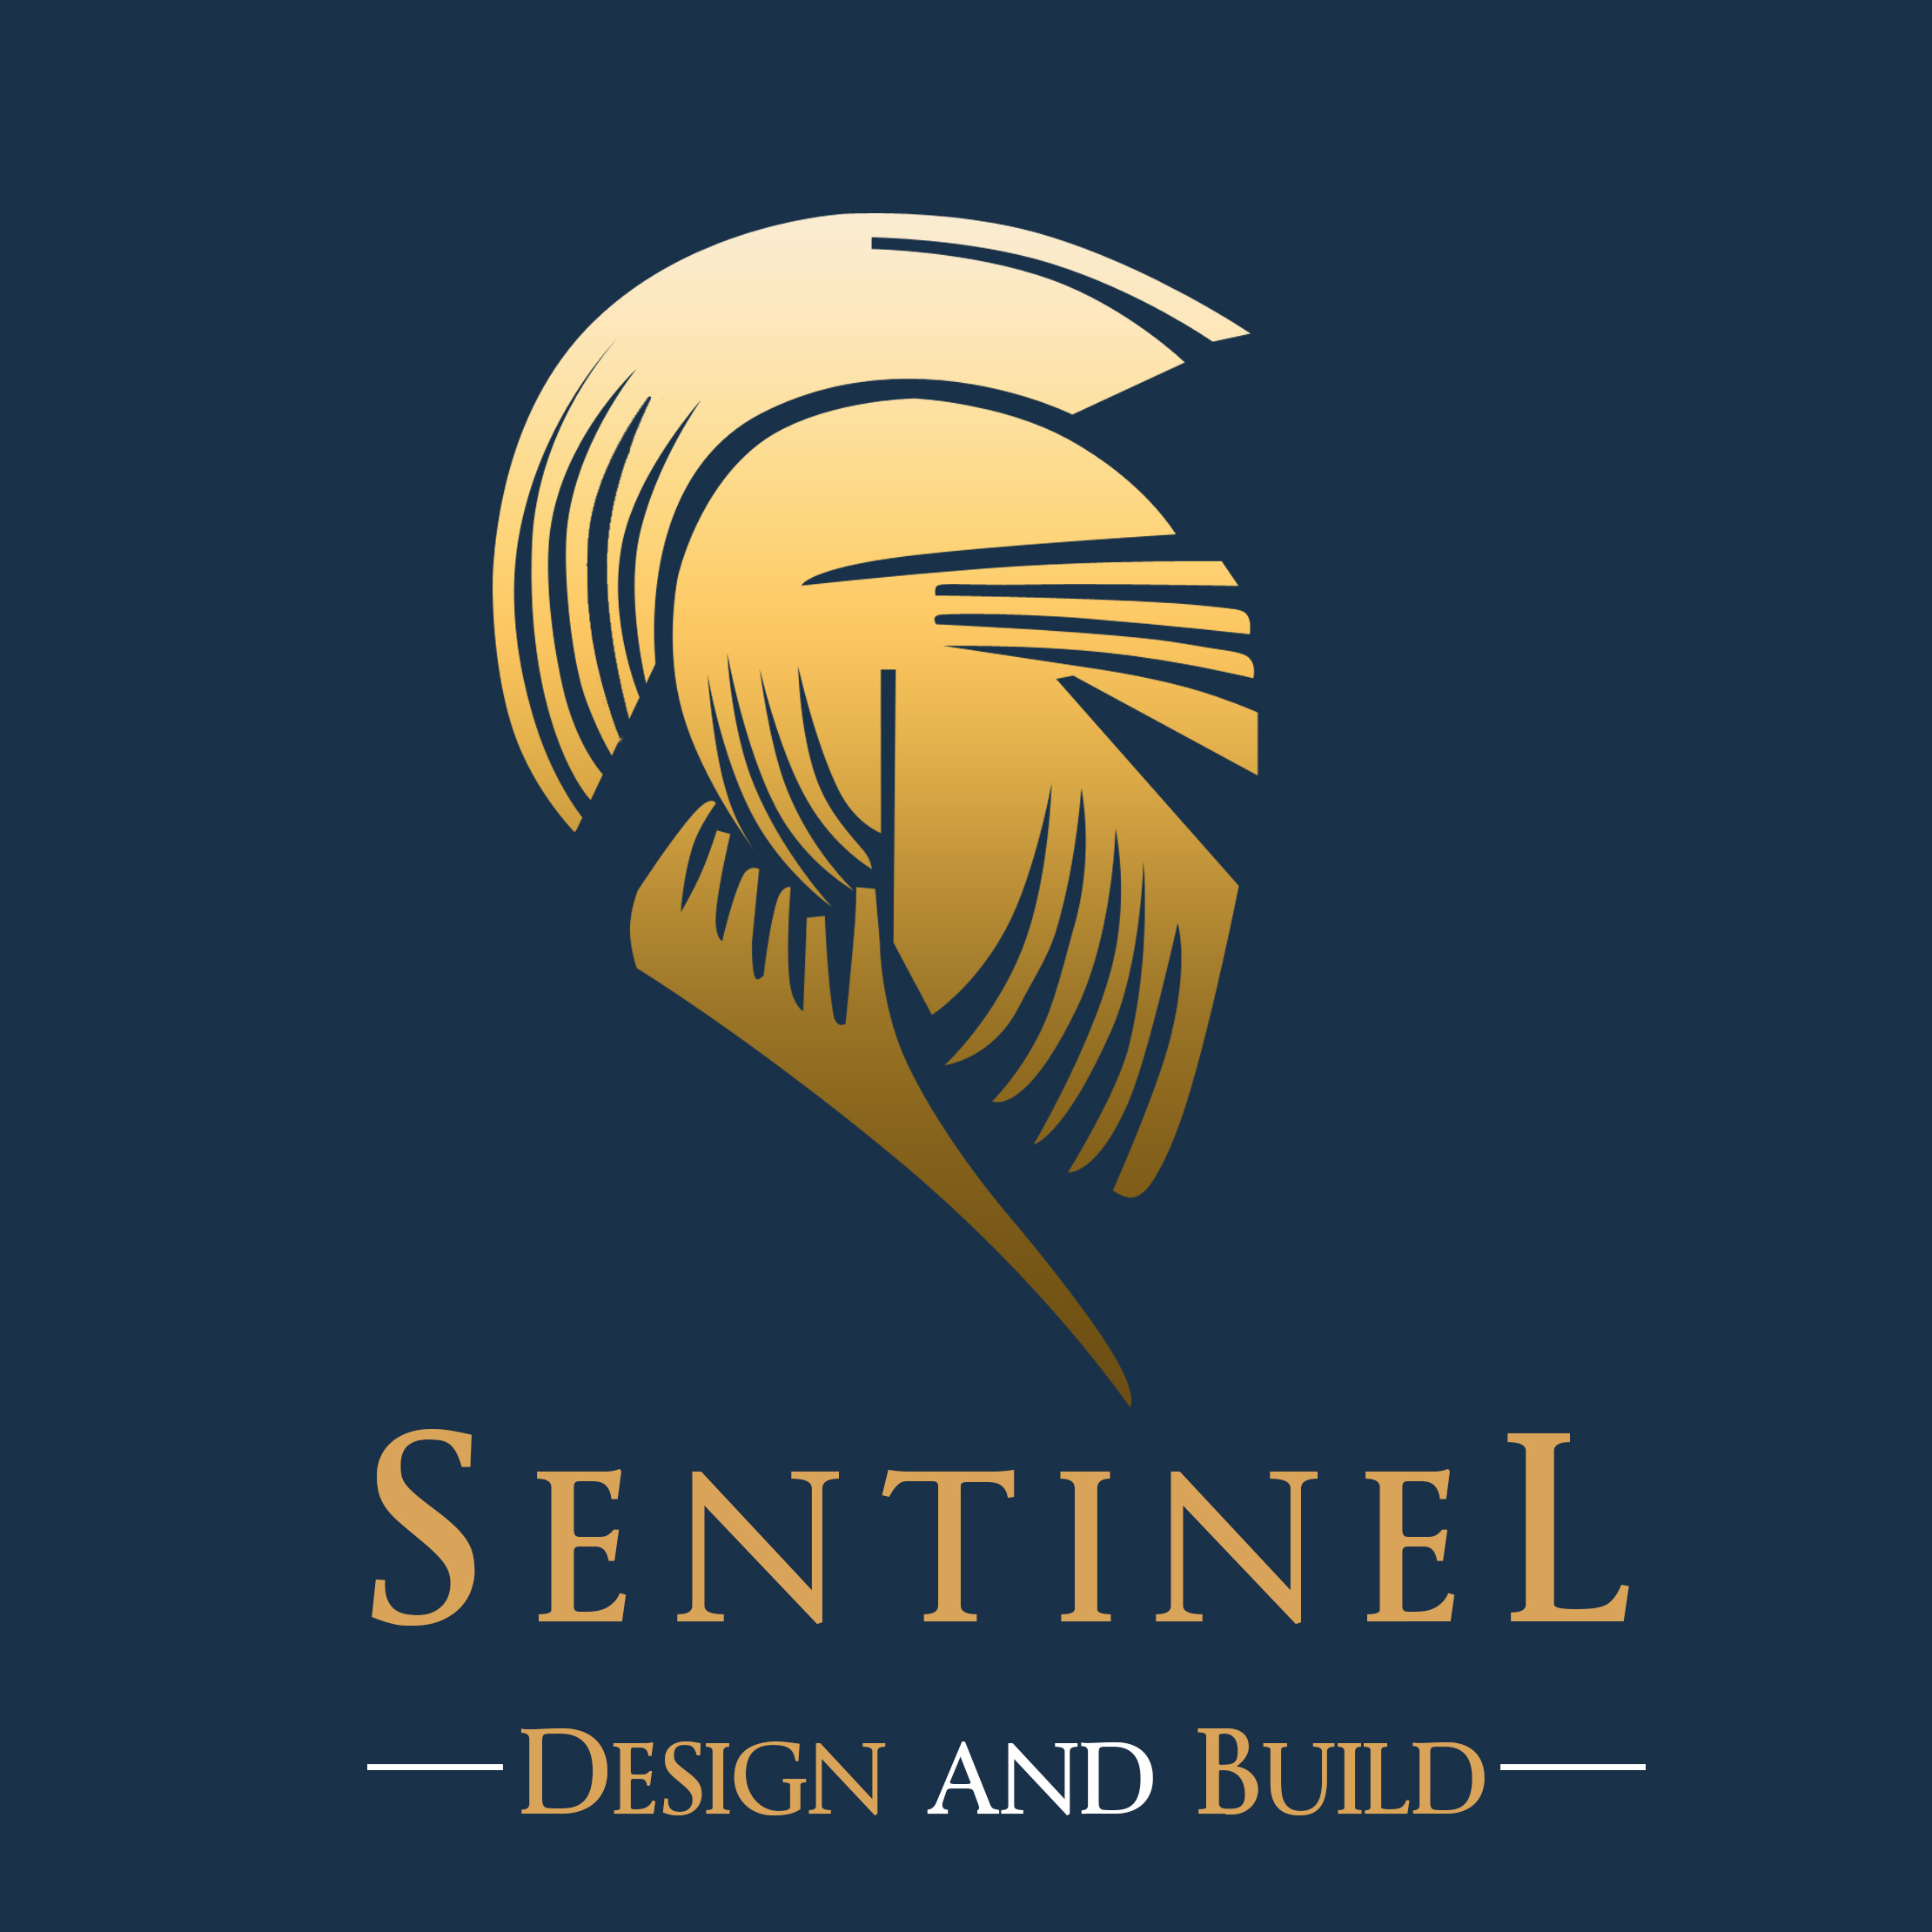 Sentinel Design and Build Verified Logo